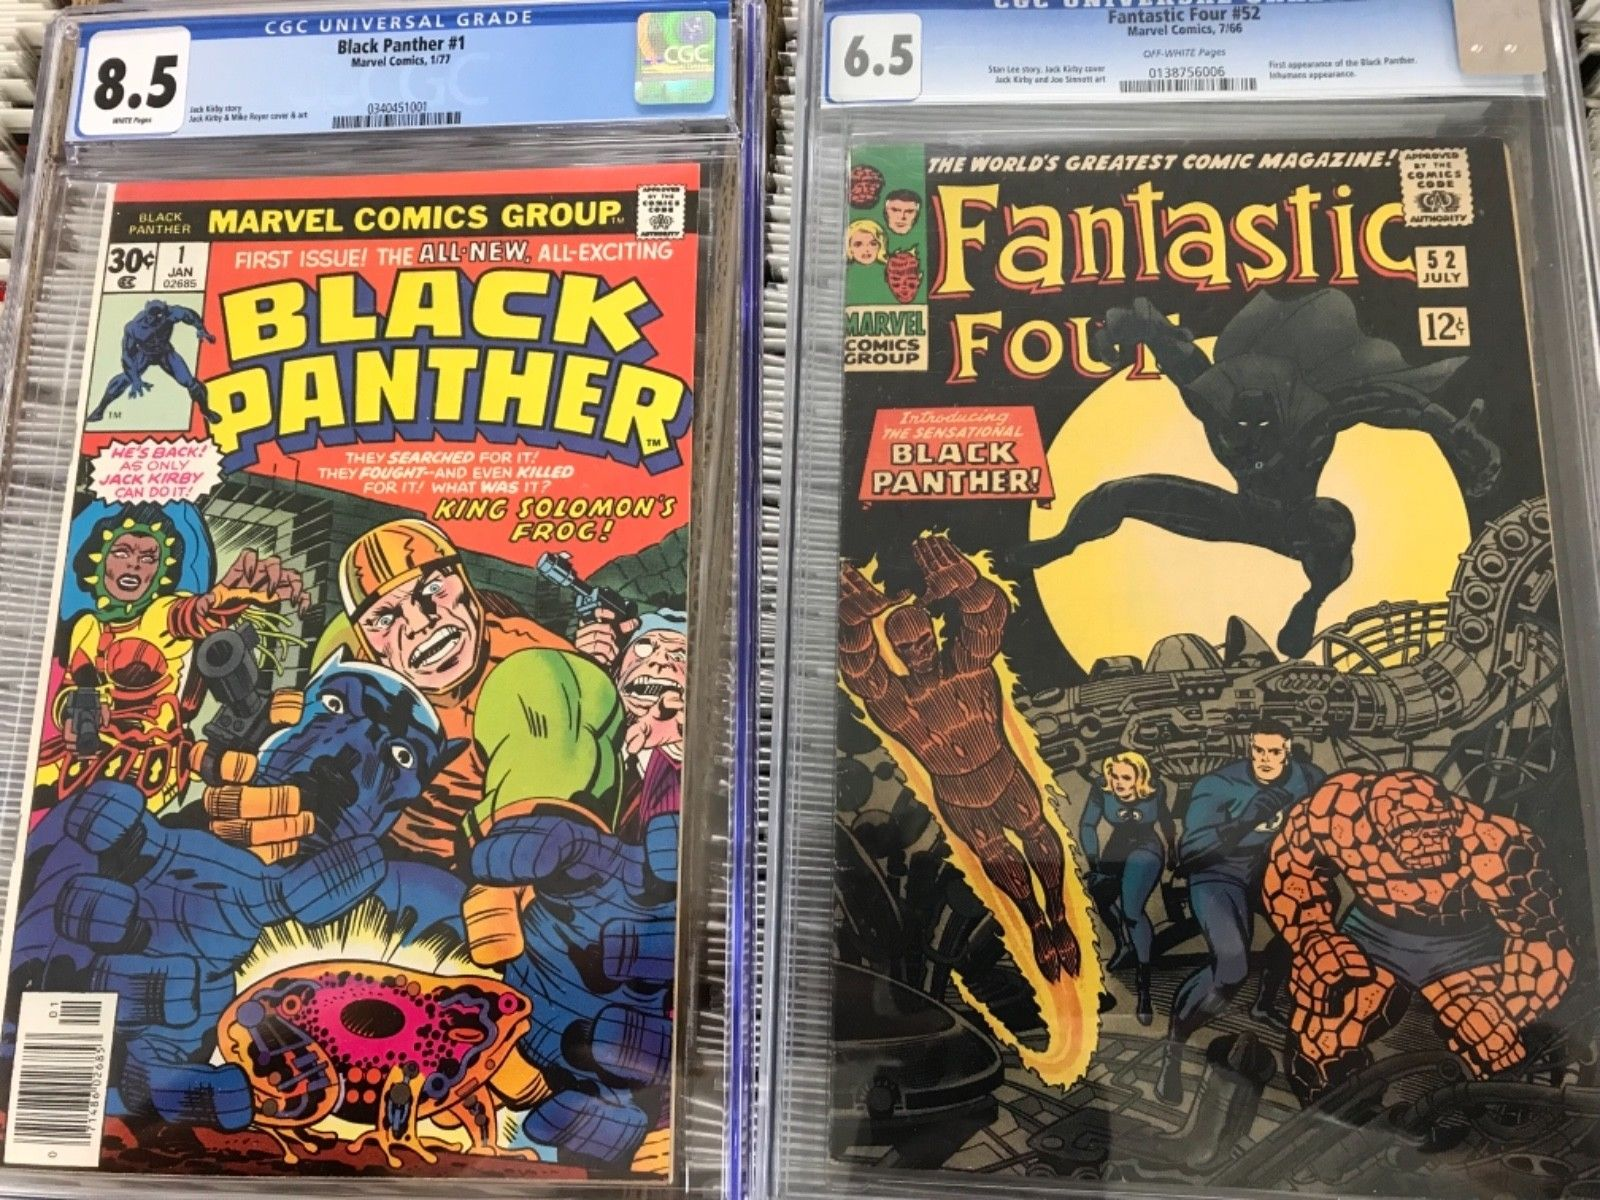 Fantastic Four #52 CGC 6.5 And Black Panther #1 CGC 8.5